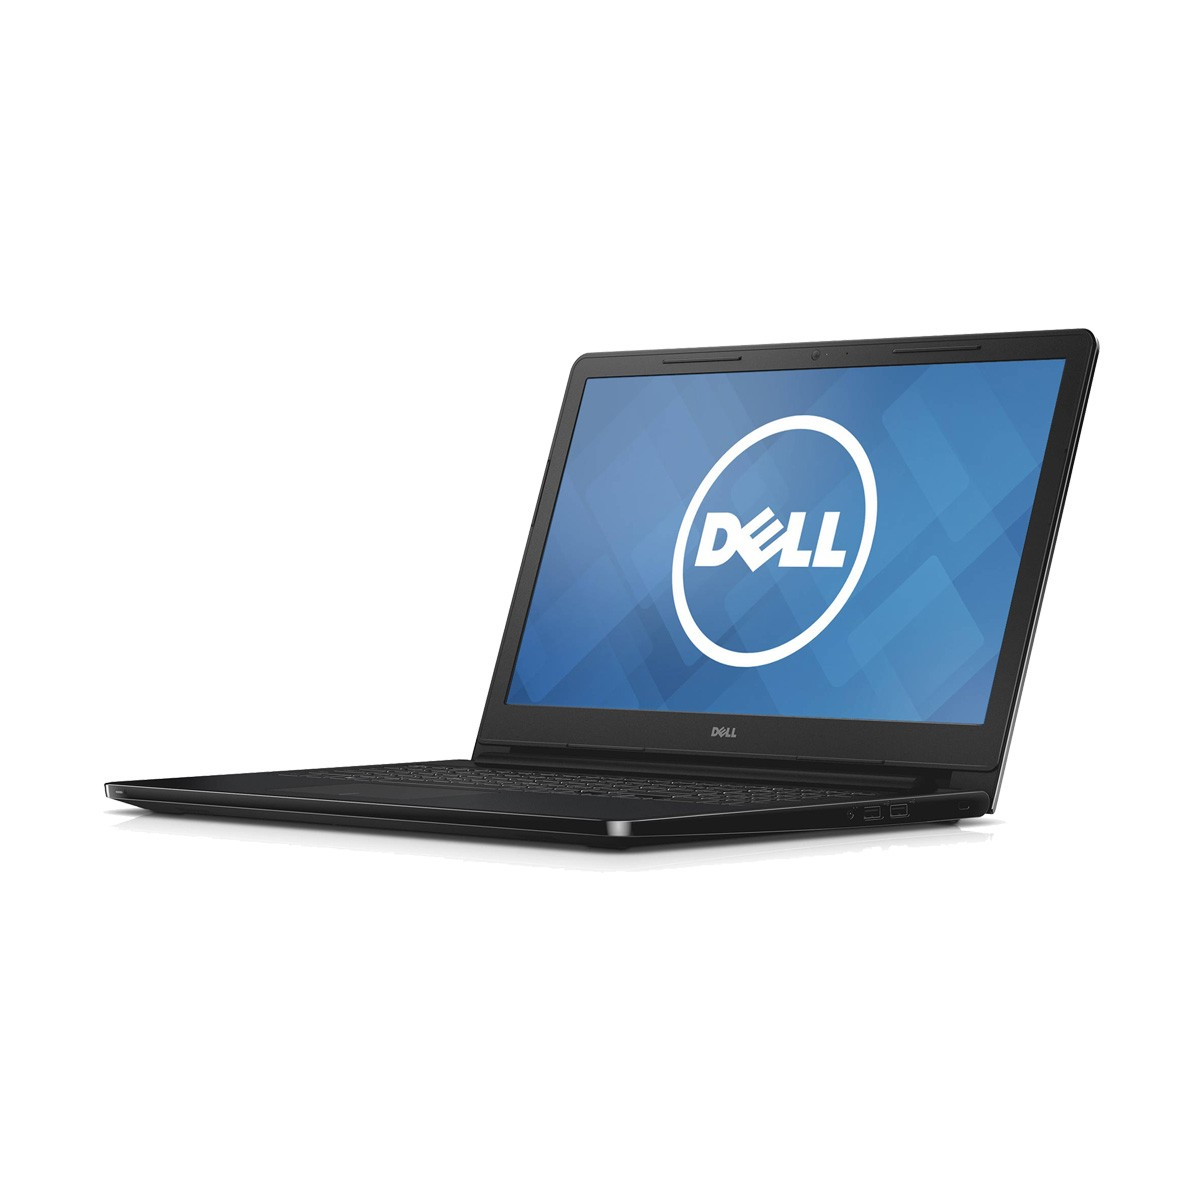 Dell Inspiron 15-3552 Intel CDC N3060